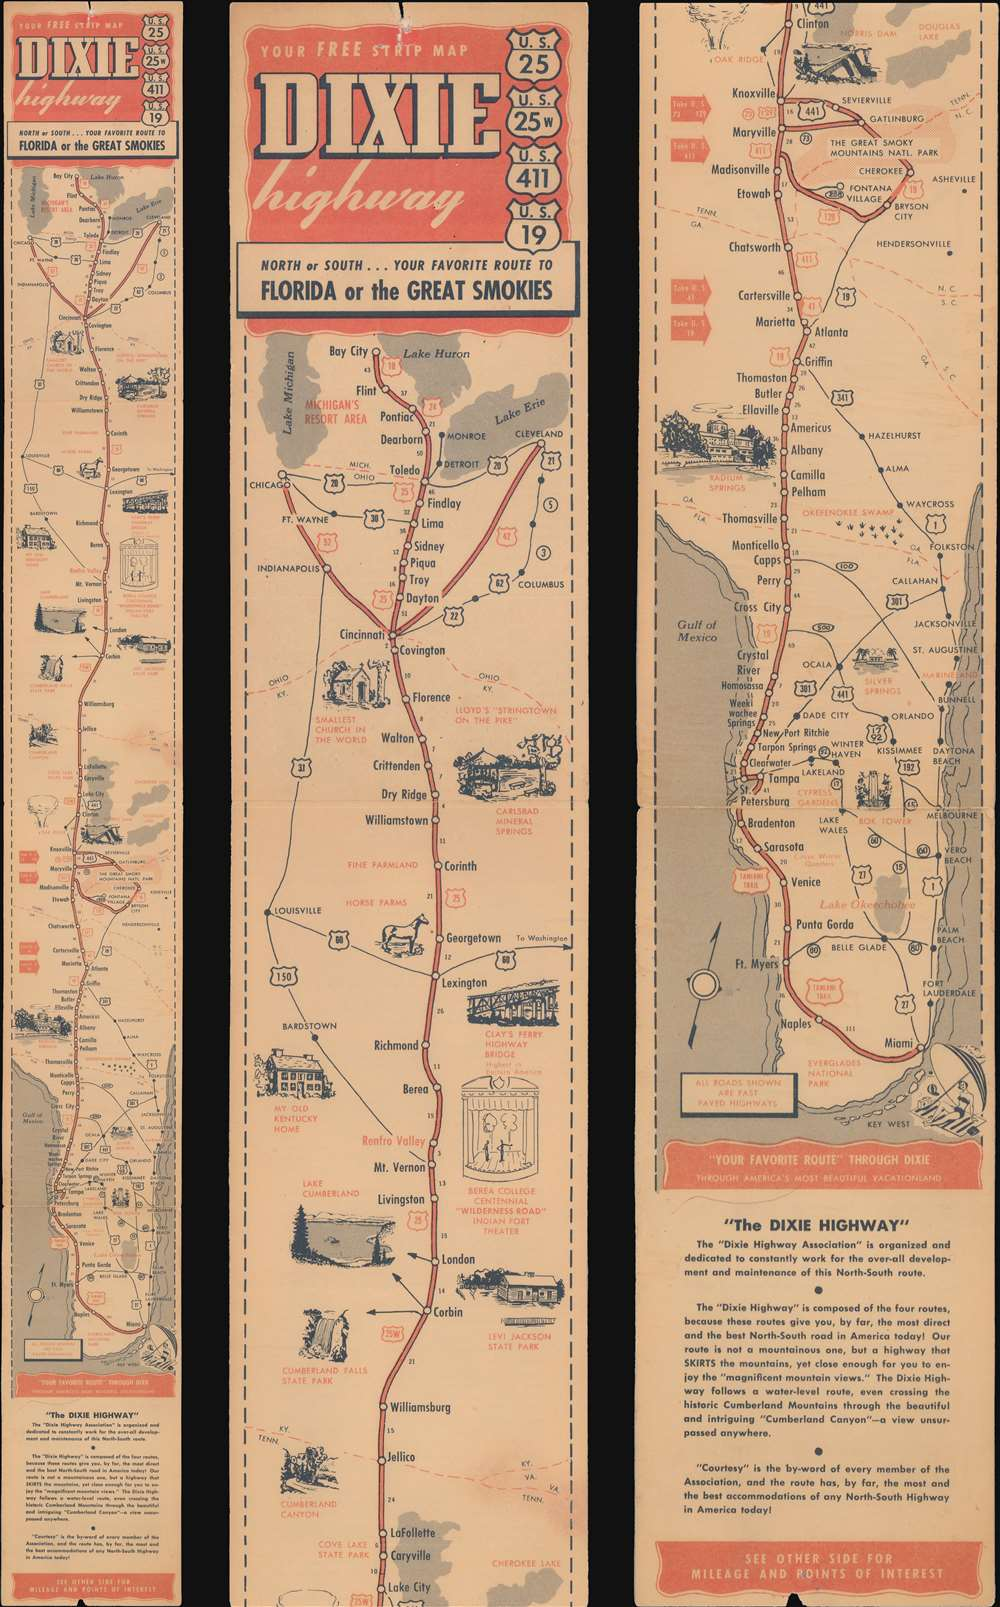 1955 U.S. 25 Dixie Highway Association Strip Map of the Dixie Highway